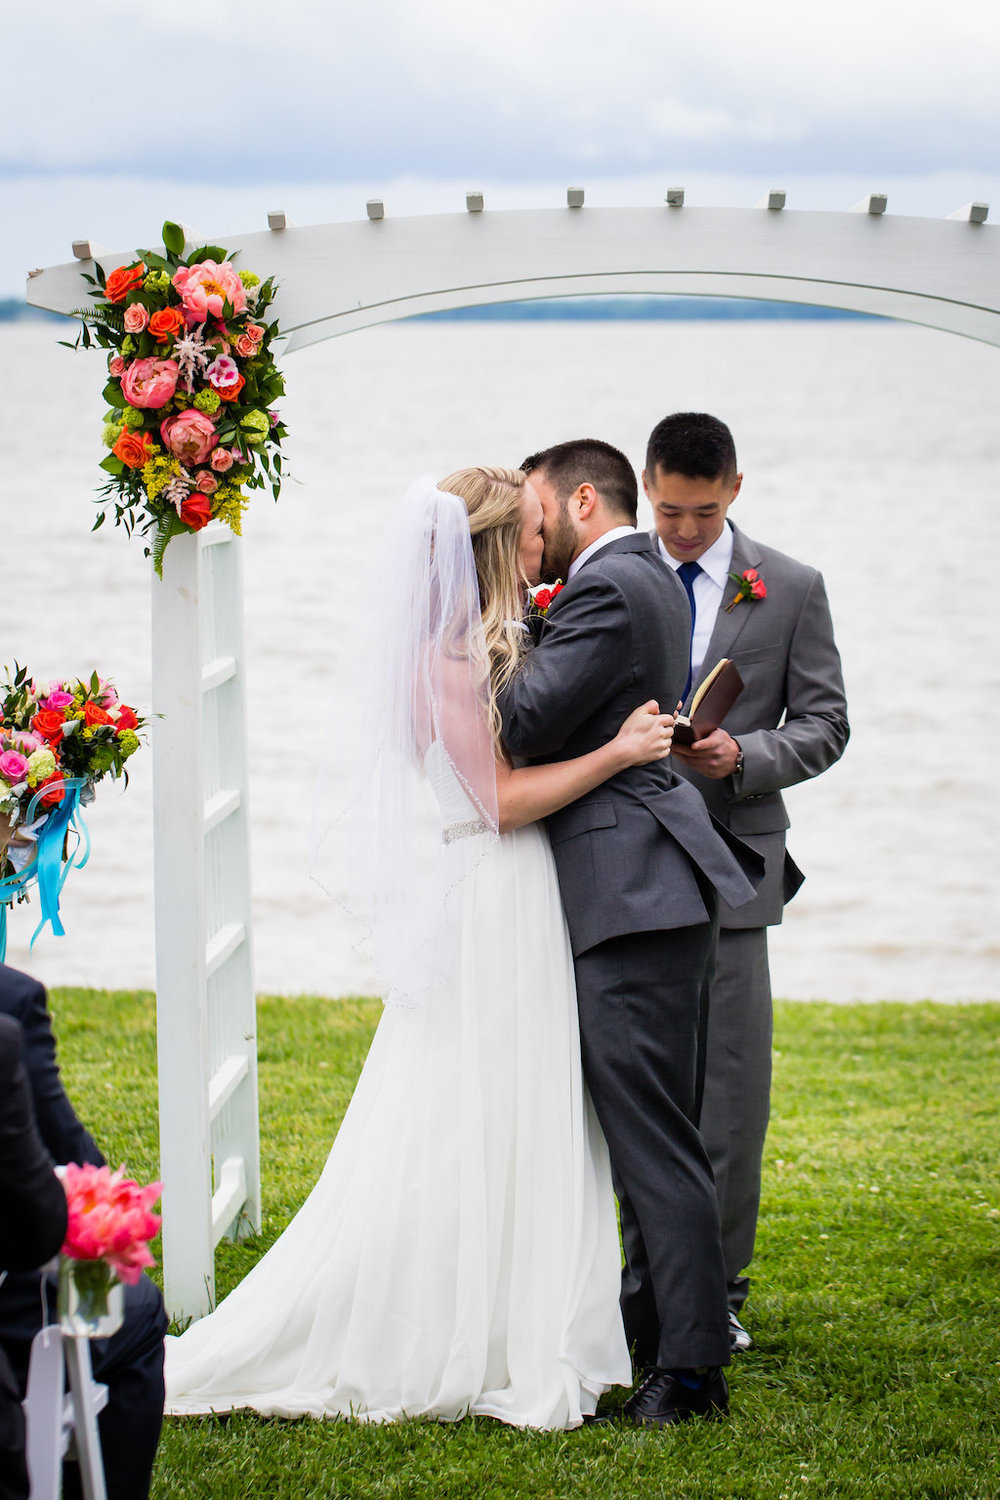 brielle-davis-events-weatherly-farm-waterfront-wedding-ceremony-kiss.jpg